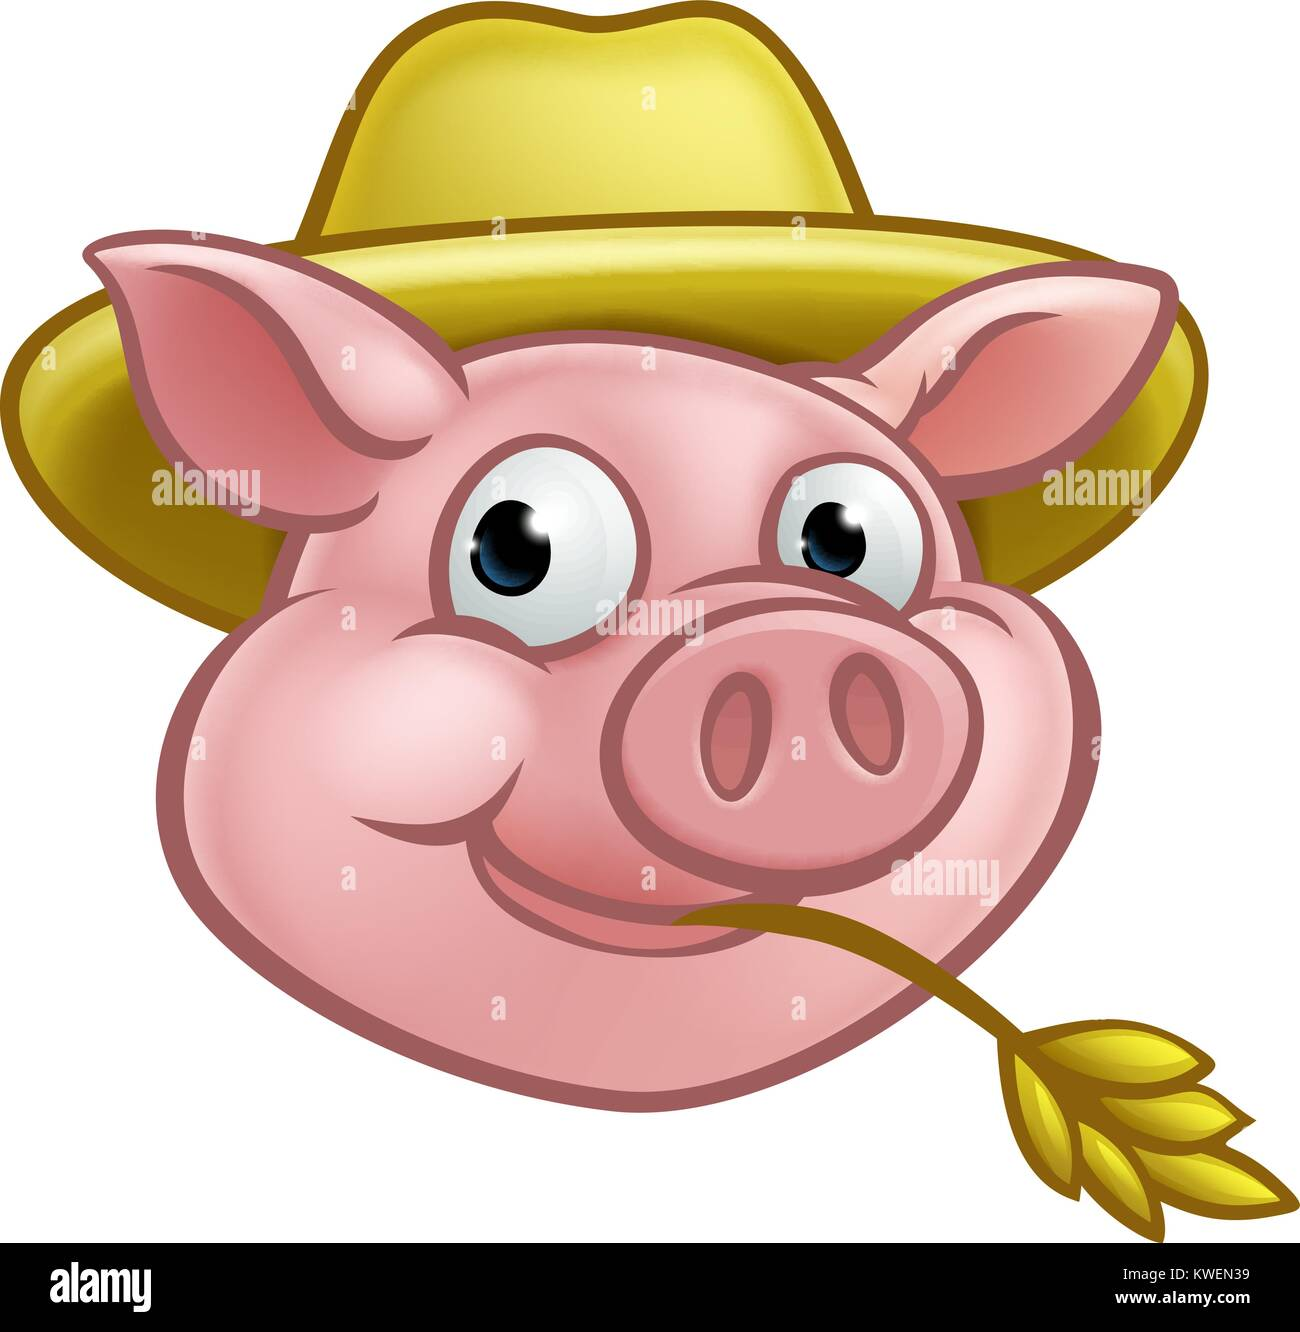 The 3 Little Pig Stock Vector Images - Alamy